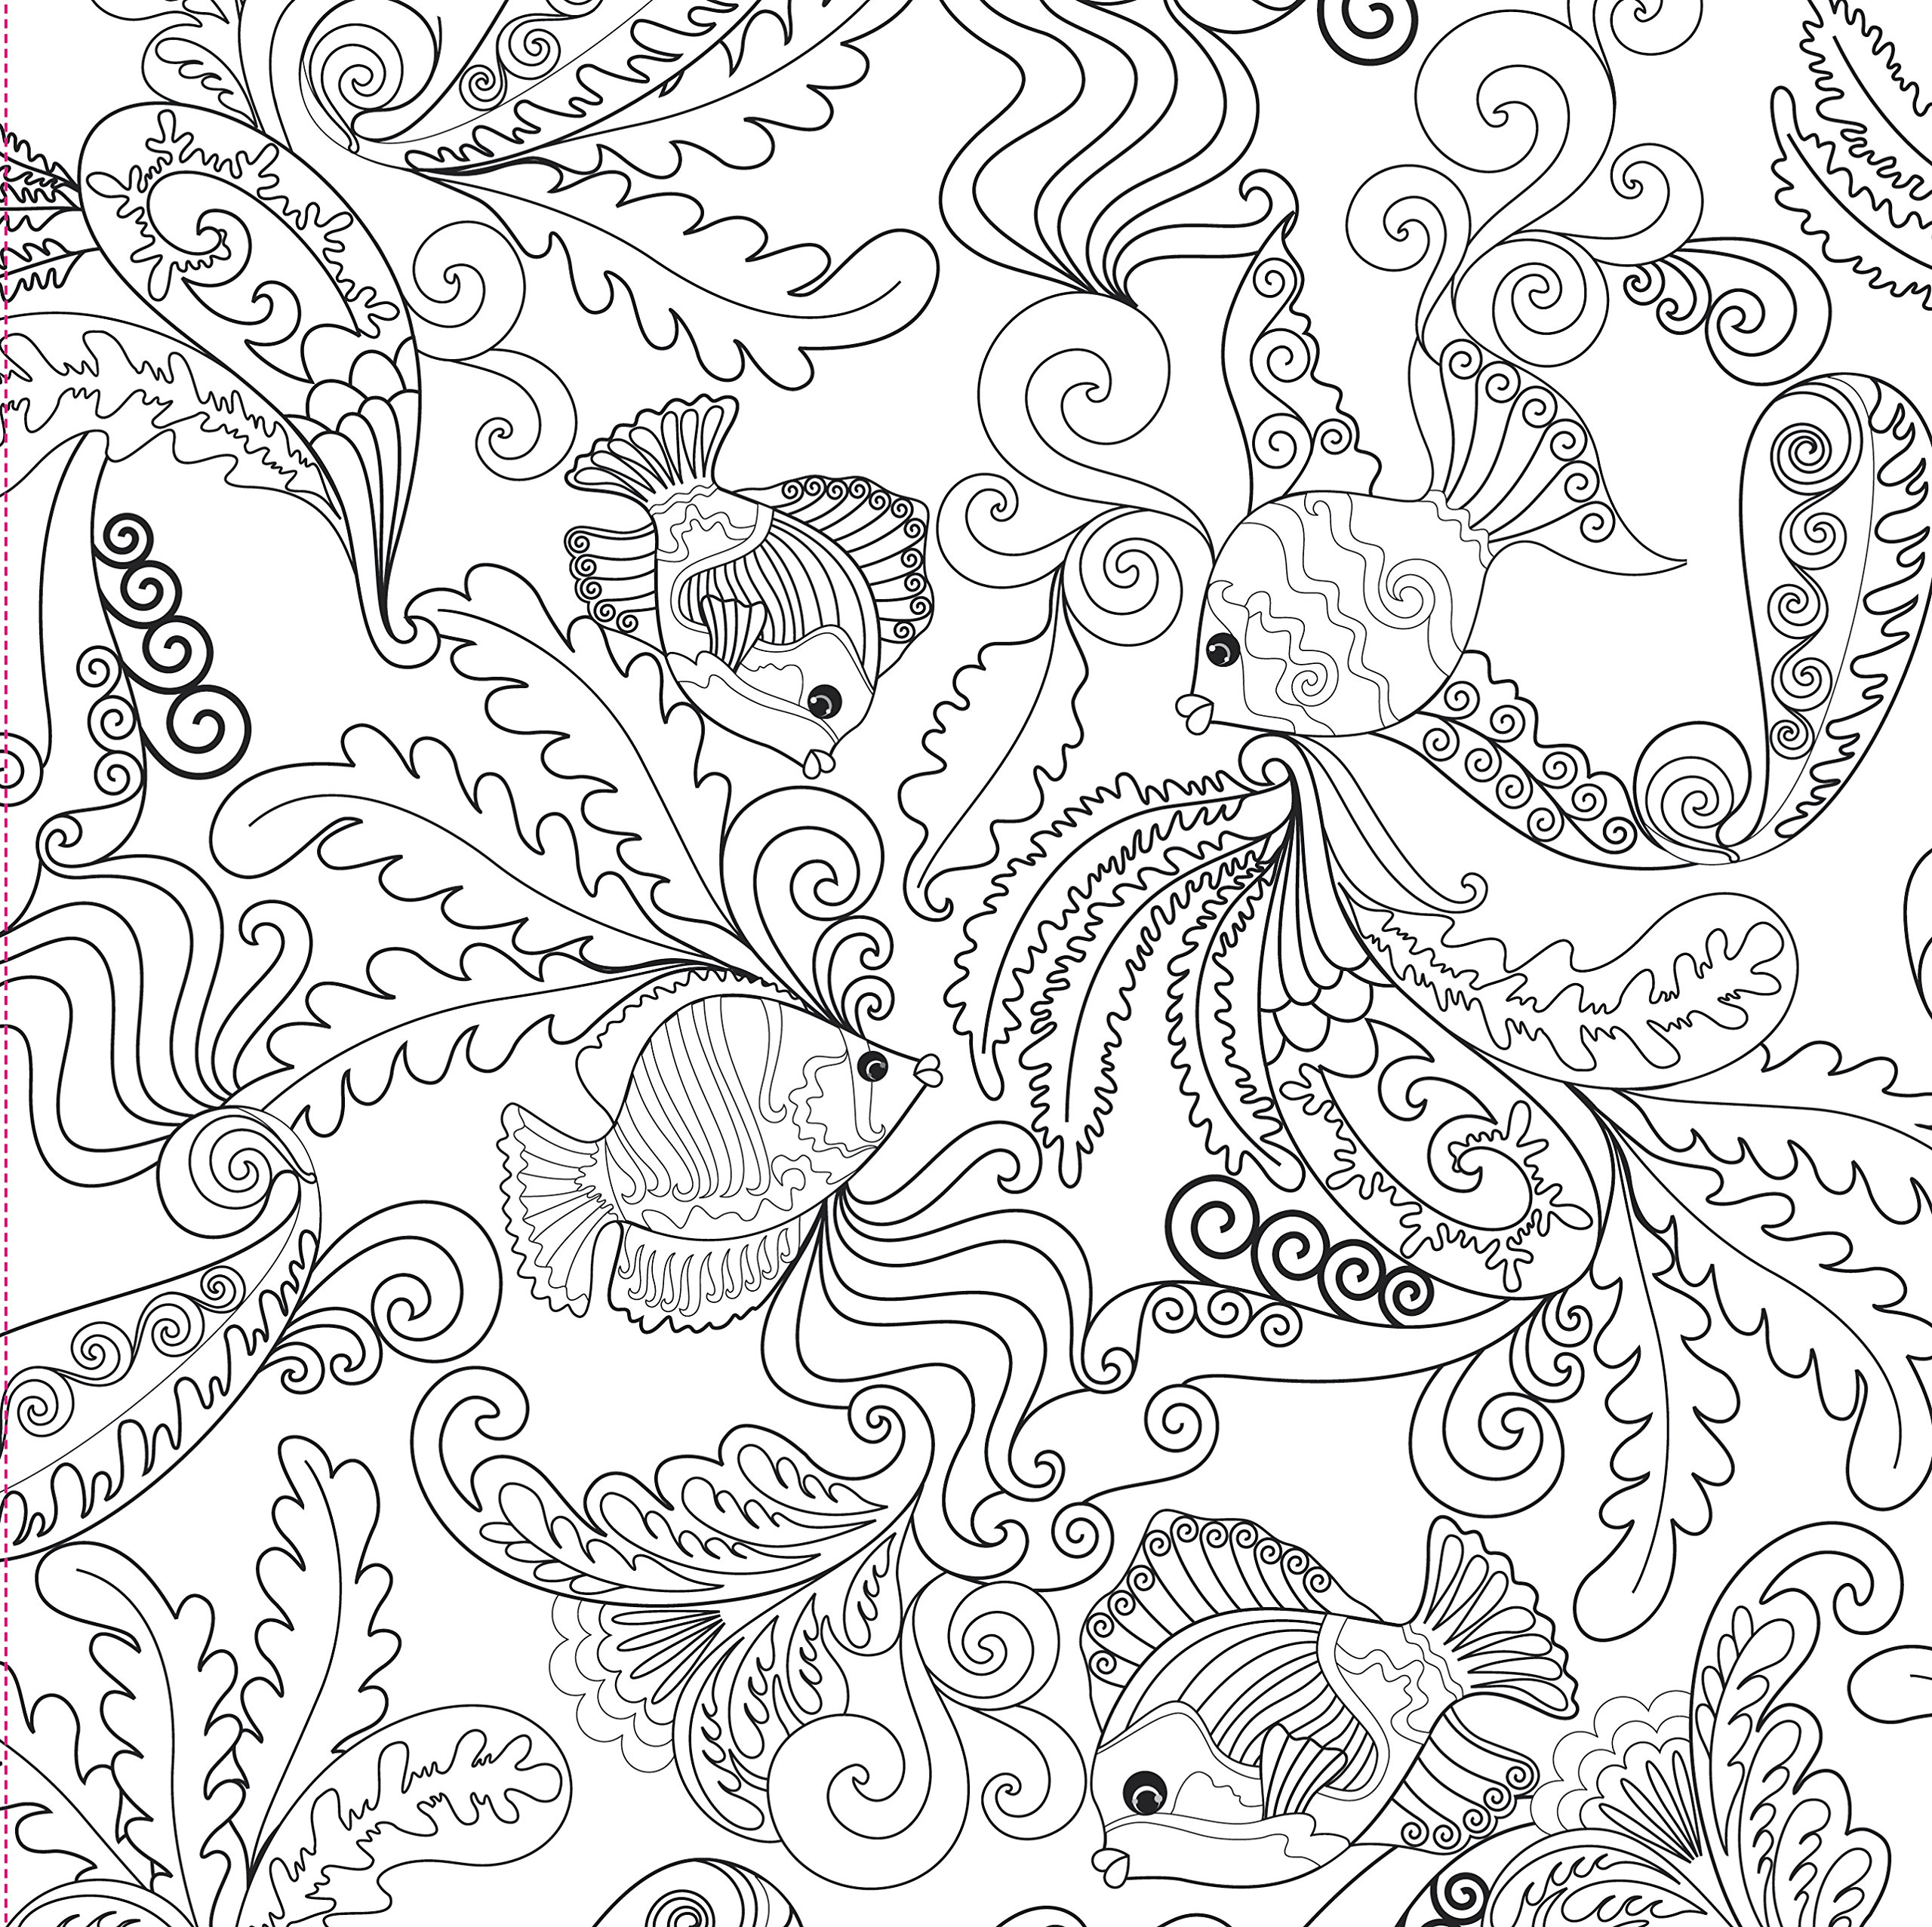 Amazon.com: Ocean Designs Adult Coloring Book (31 stress-relieving ...